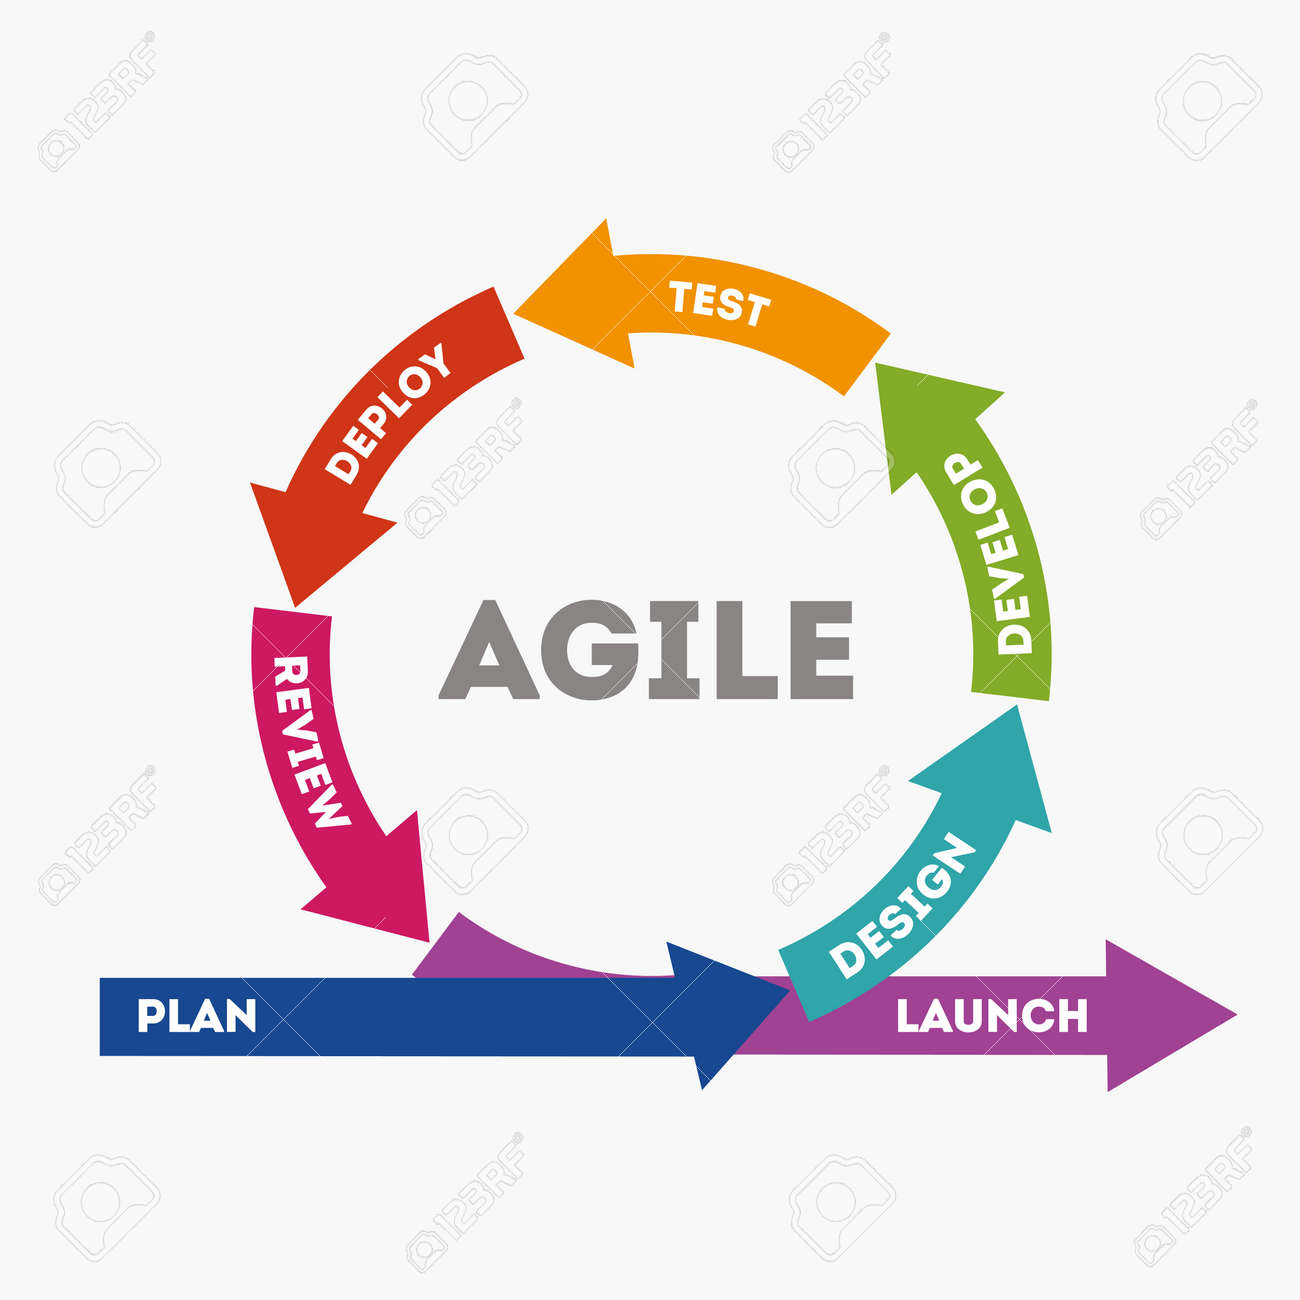 The concept of rapid product development. The concept of the sprint product development. Diagram of life cycle of product development in flat style. Vector illustration Eps10 file - 101750844